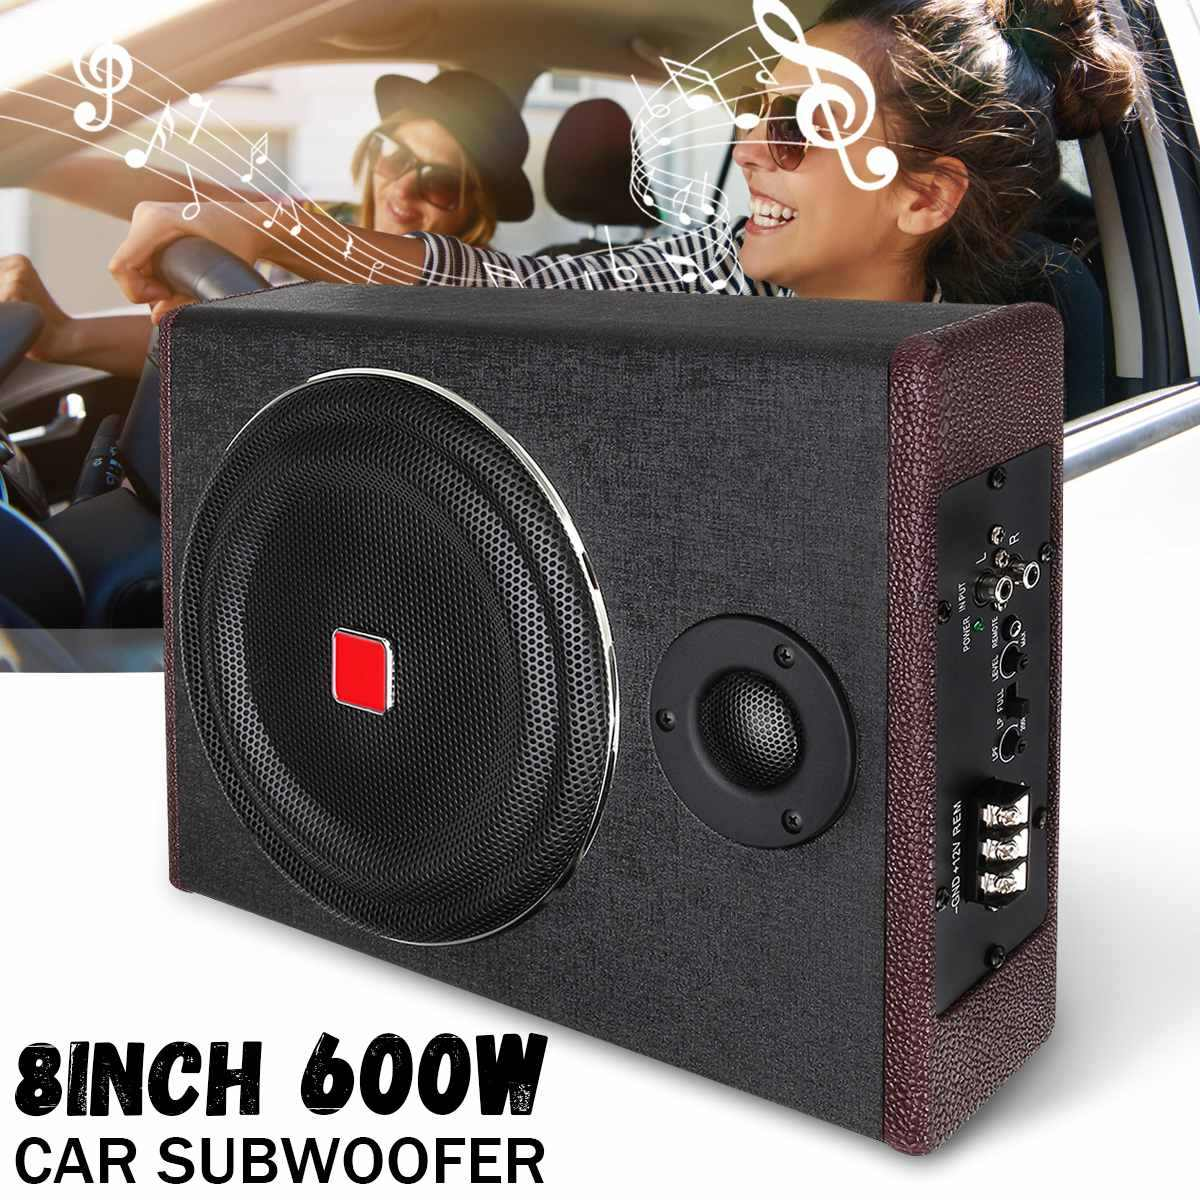 8 Inch 600W Car Subwoofer Speaker Active Under Seat Slim Sub Woofer AMP Super Bass Car Amplifier Subwoofers